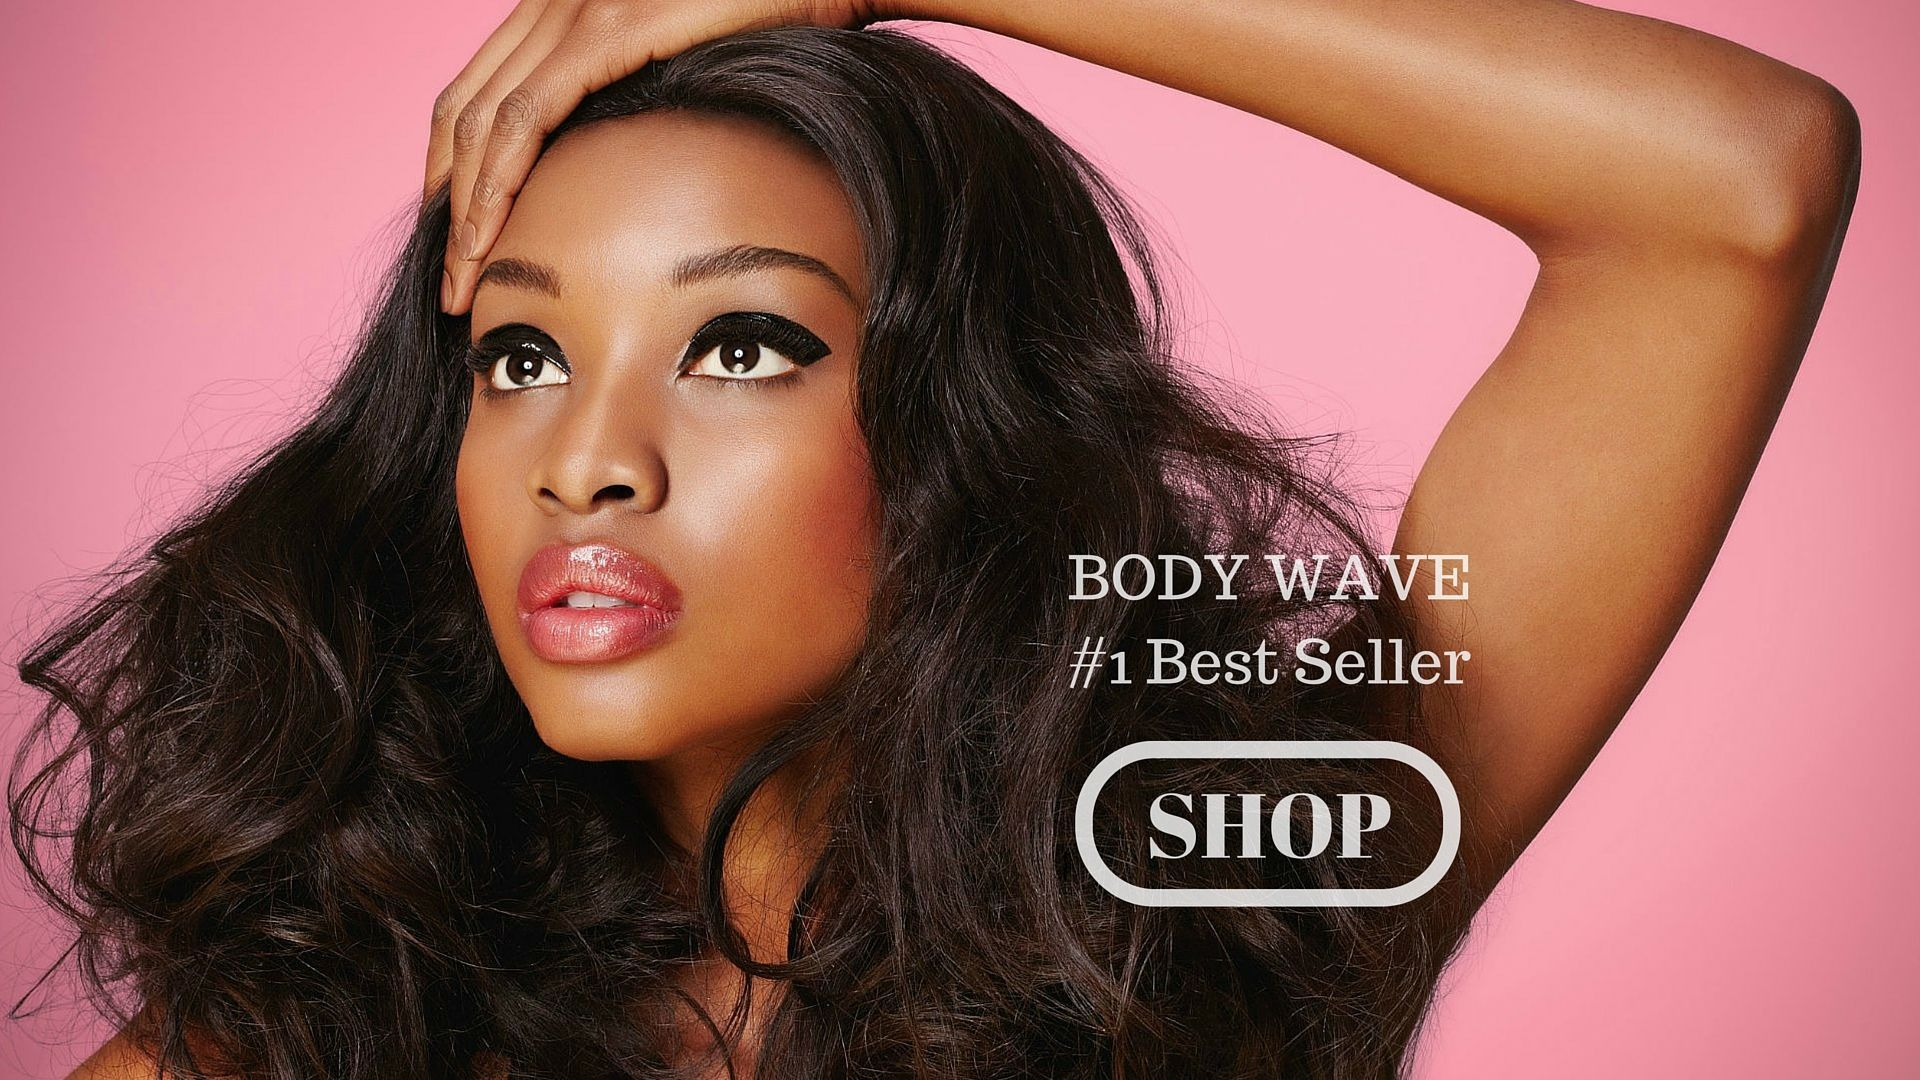 Diva Licious Virgin Offers Top Quality Hair Extensions At Affordable